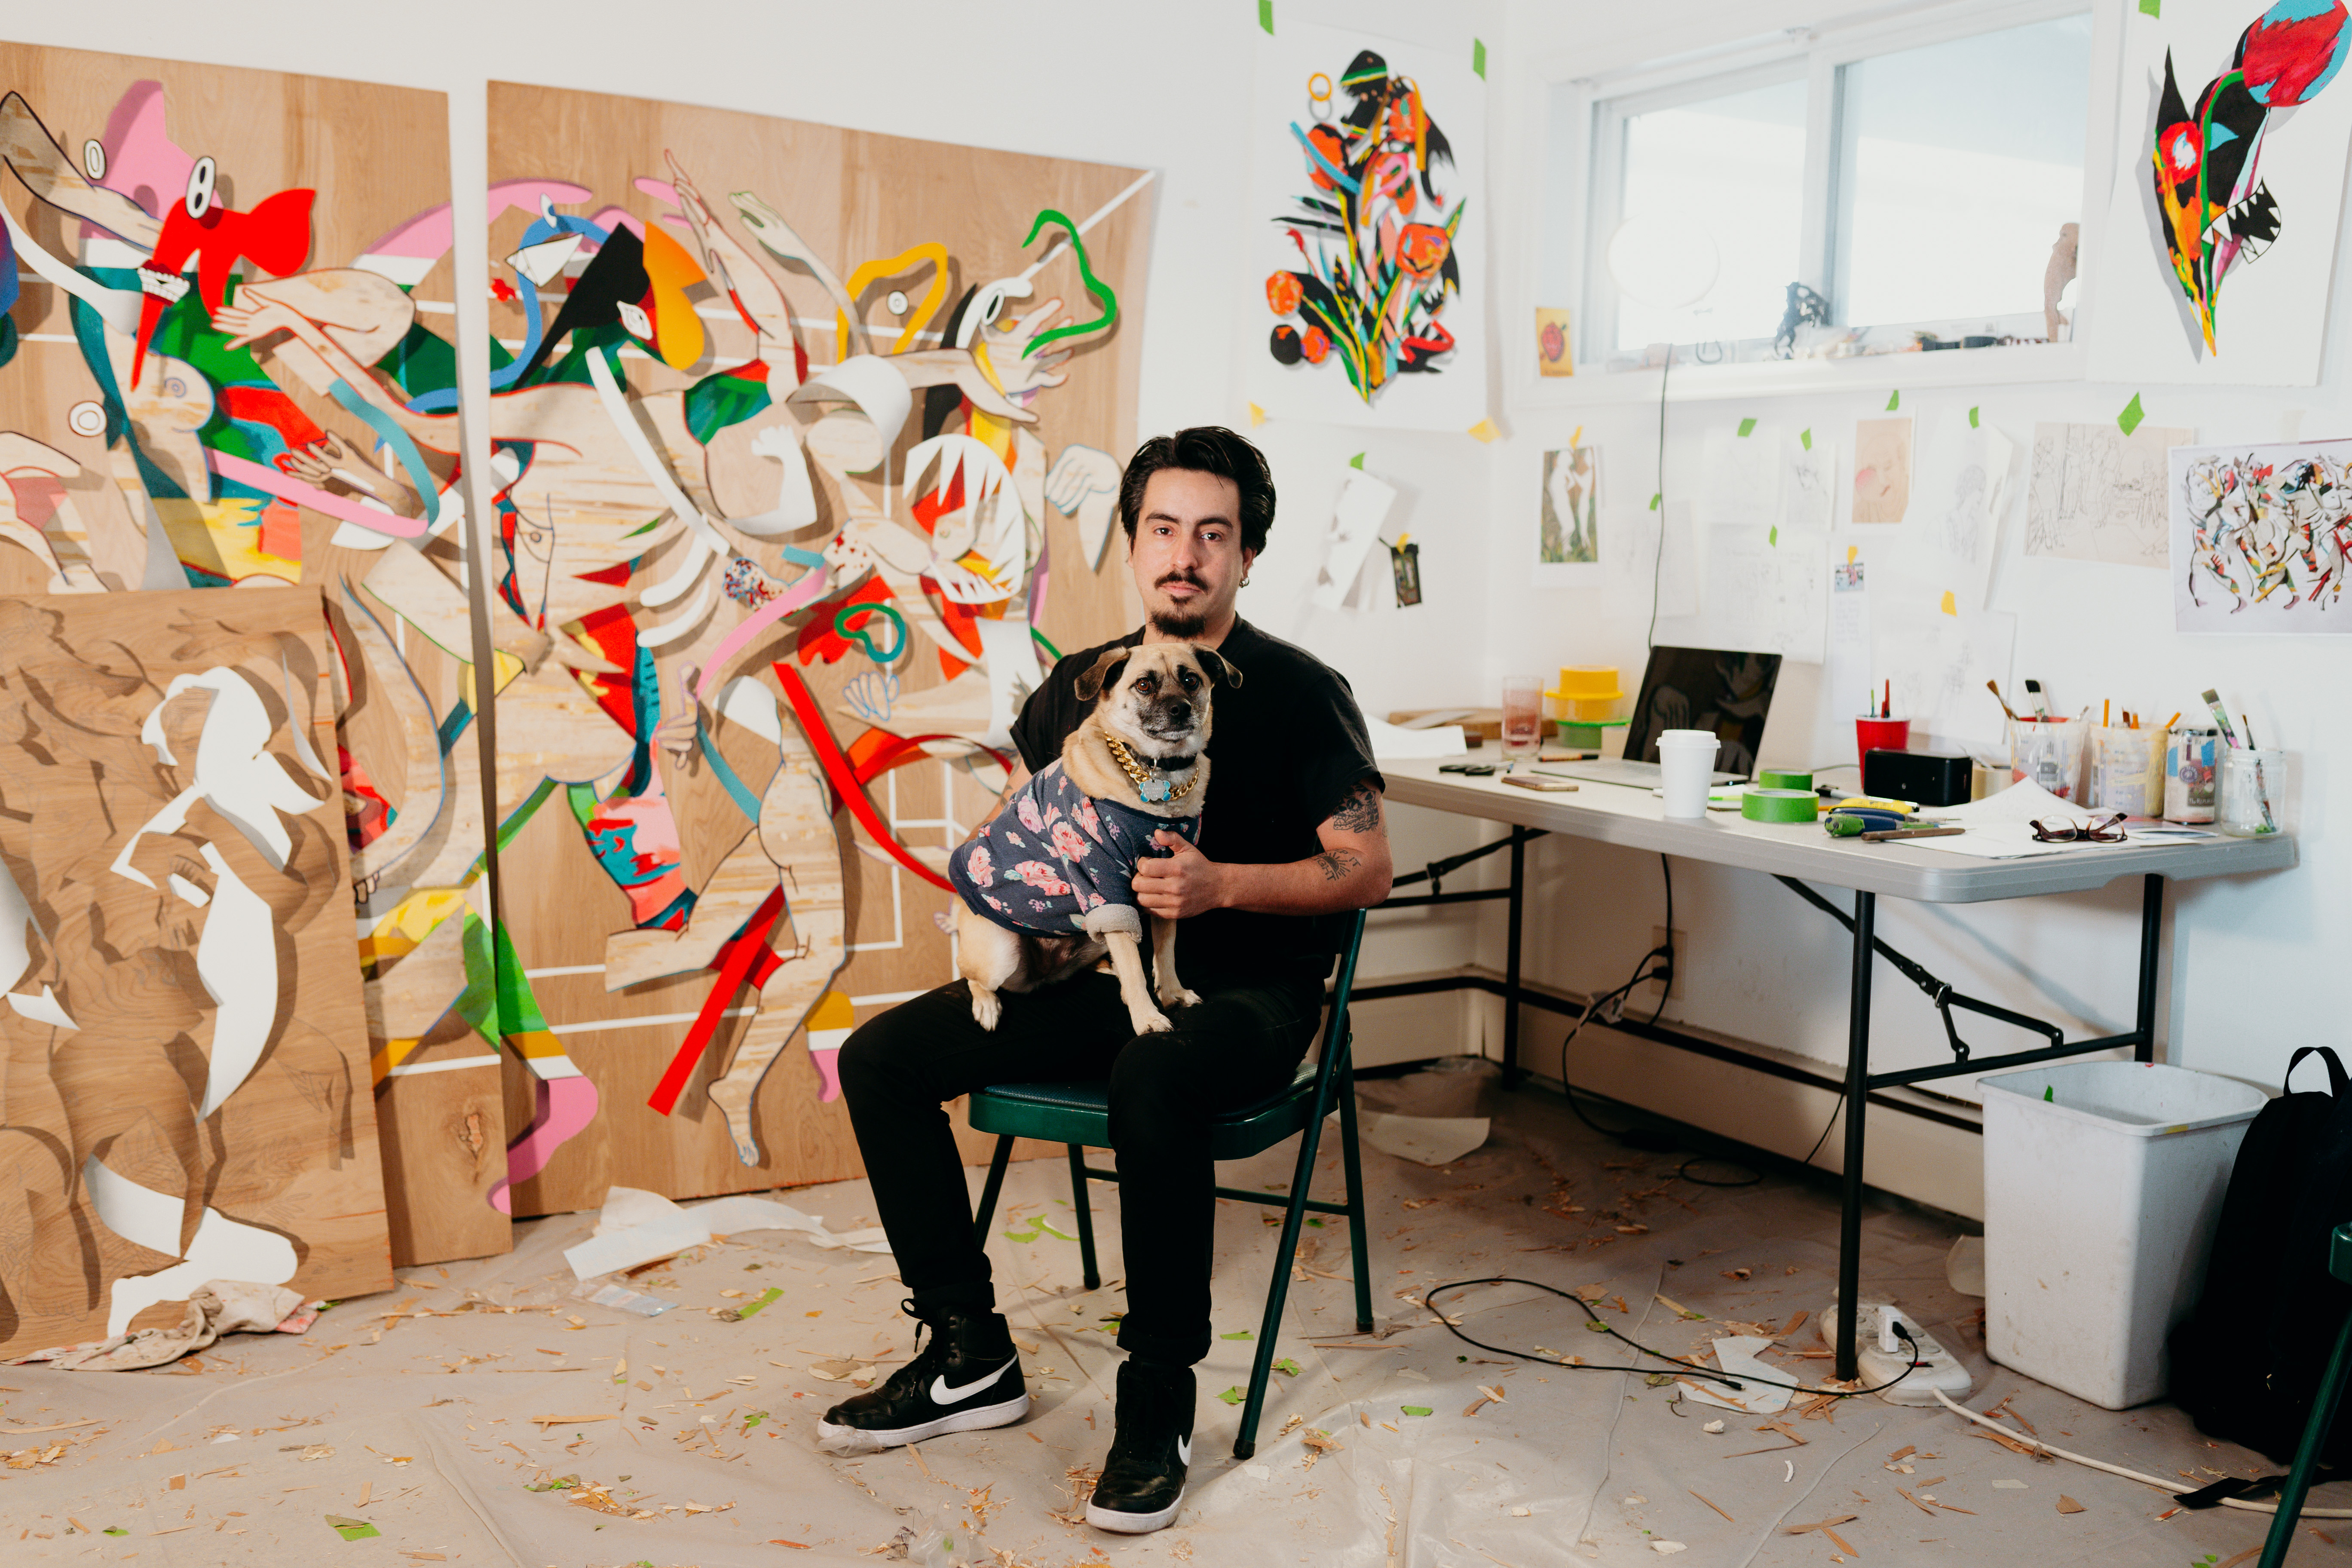 A man sits in a chair with a small dog in his lap in a studio space with  large paintings resting against the walls.